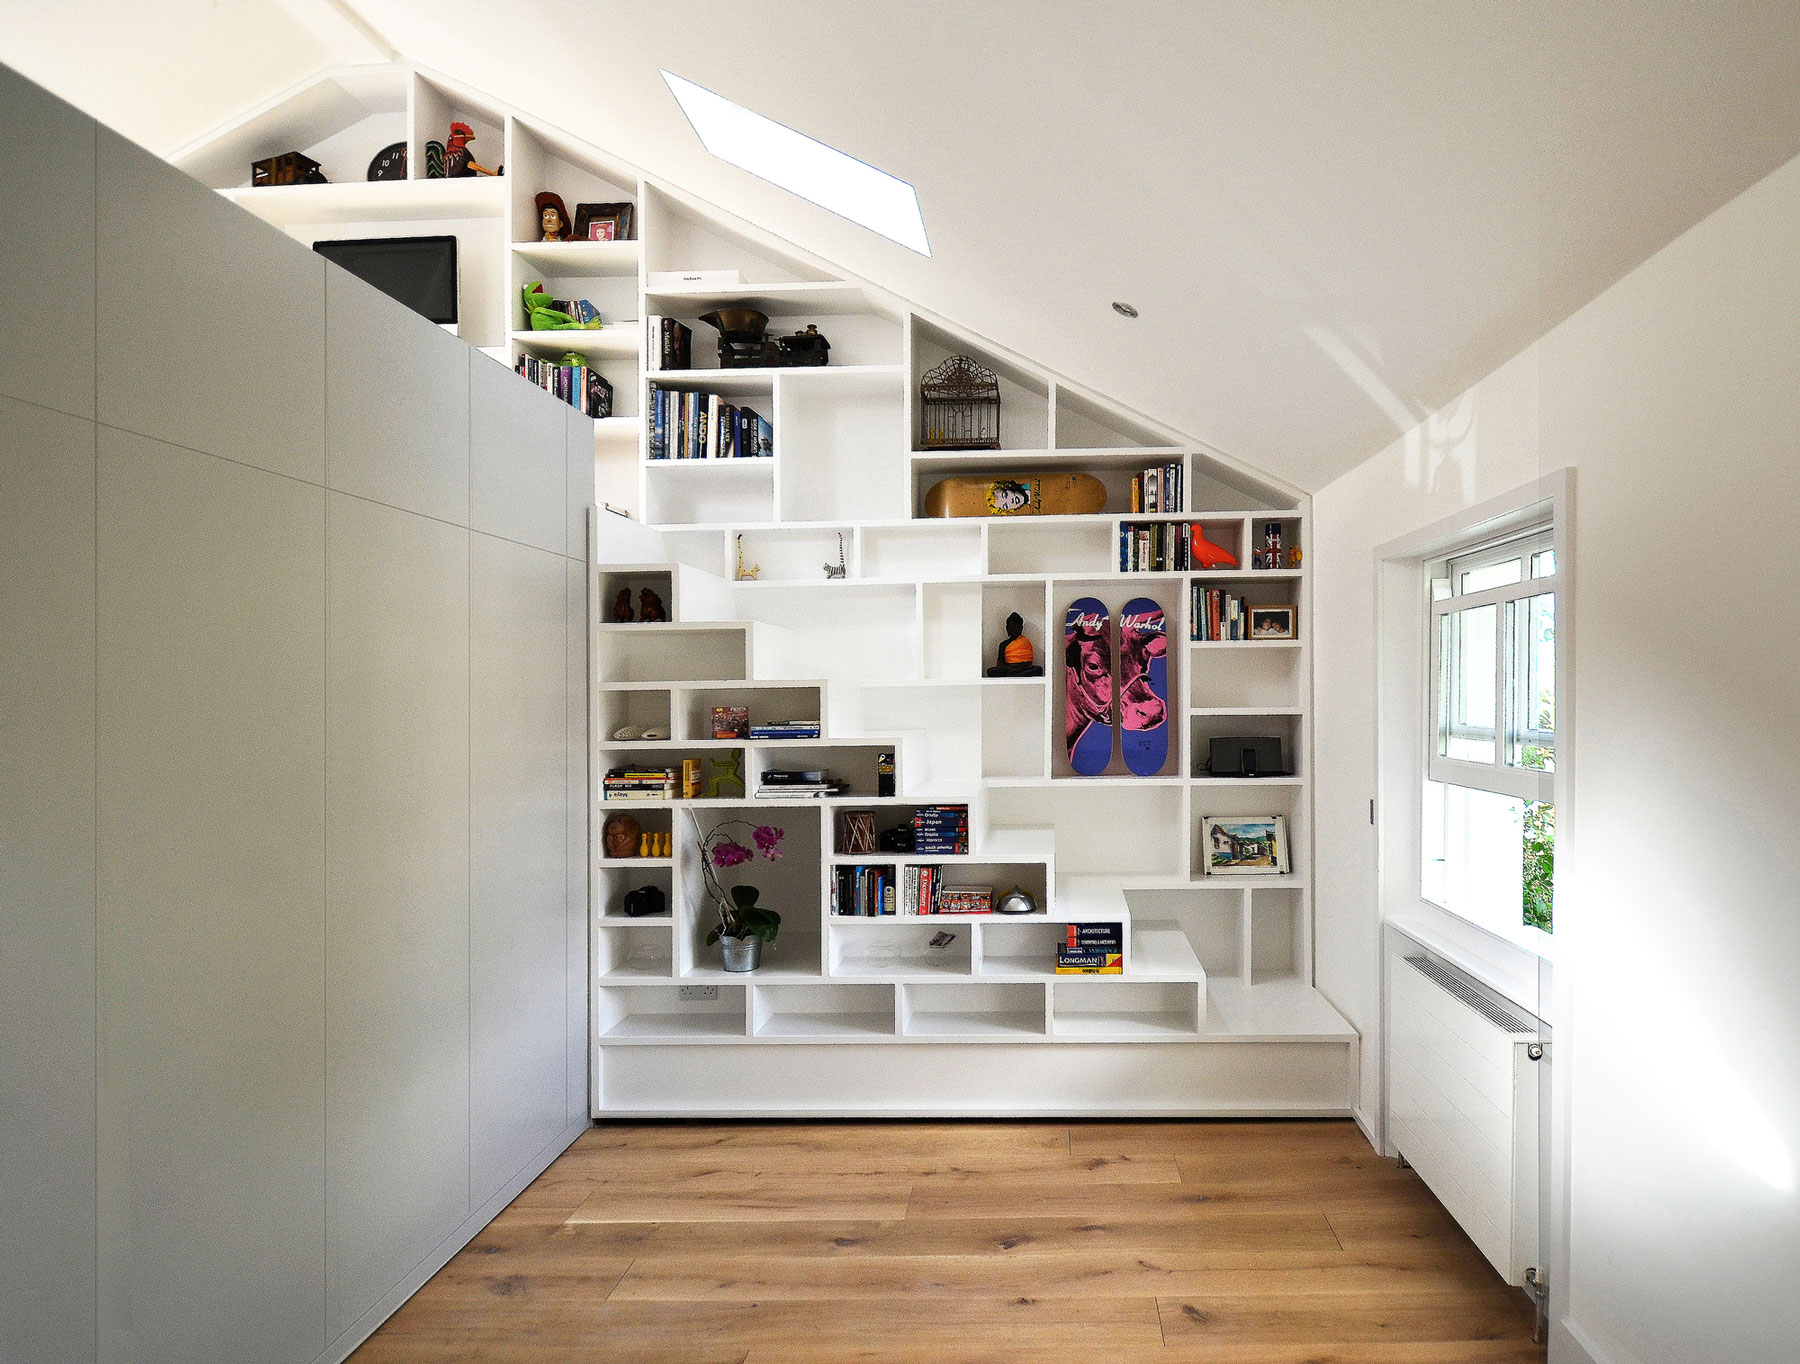 loft-space-in-camden-08